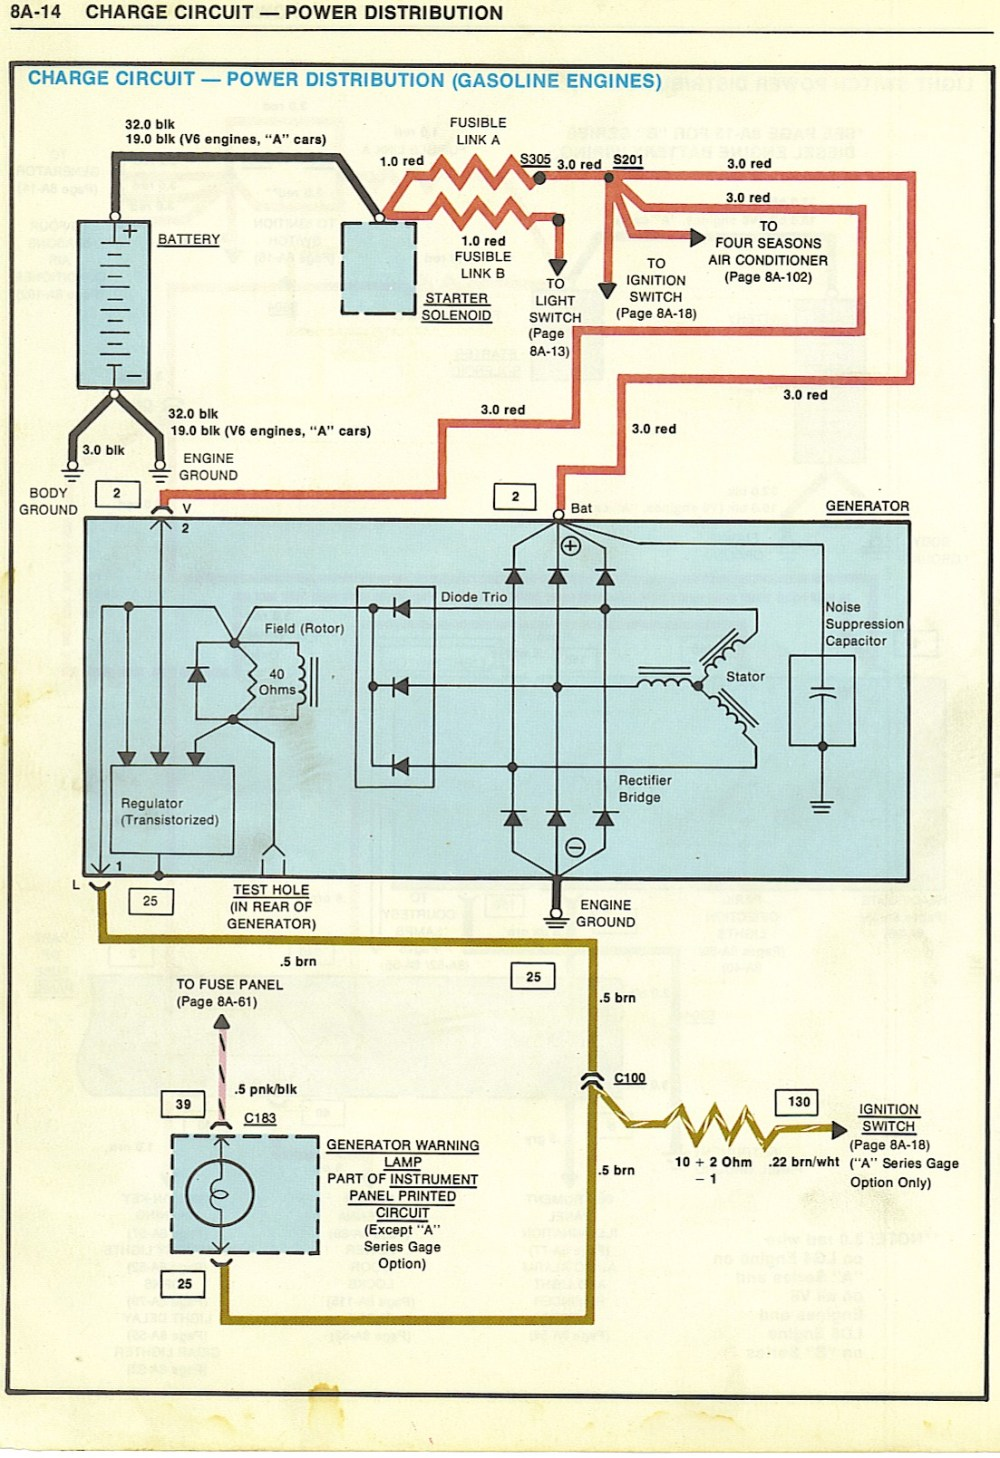 medium resolution of 1978 oldsmobile engine diagram wiring schematic